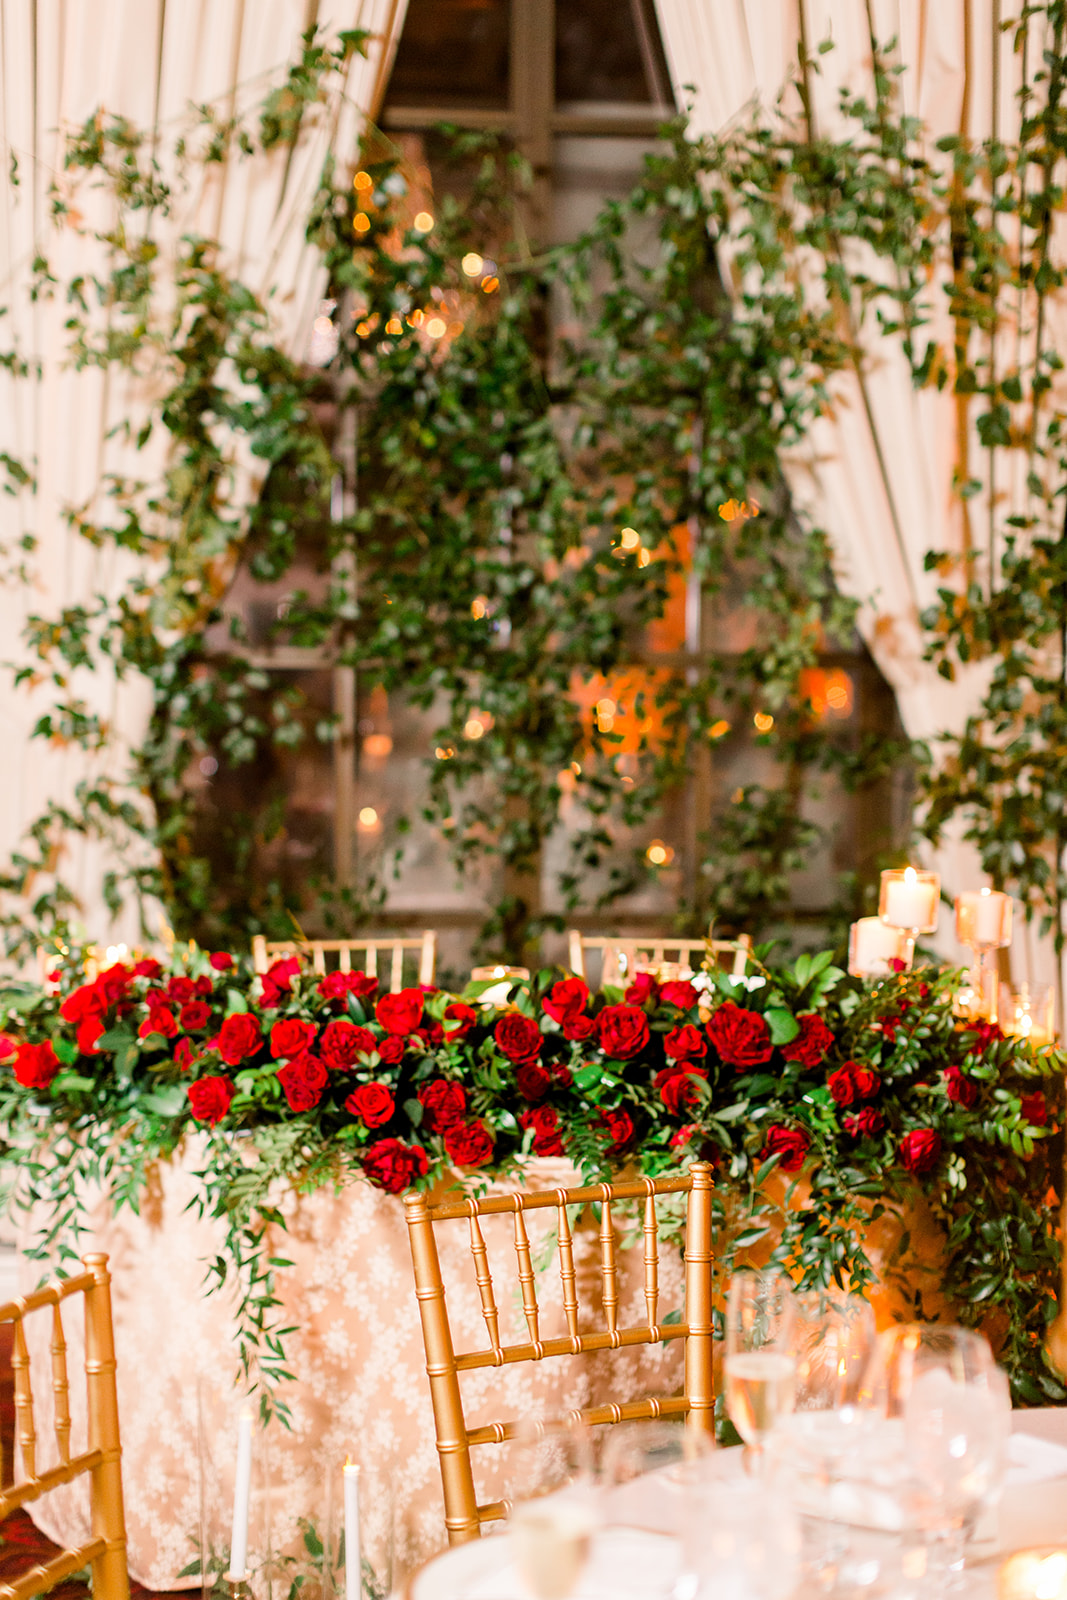 Candice Adelle Photography, St. Regis Hotel, Washington DC